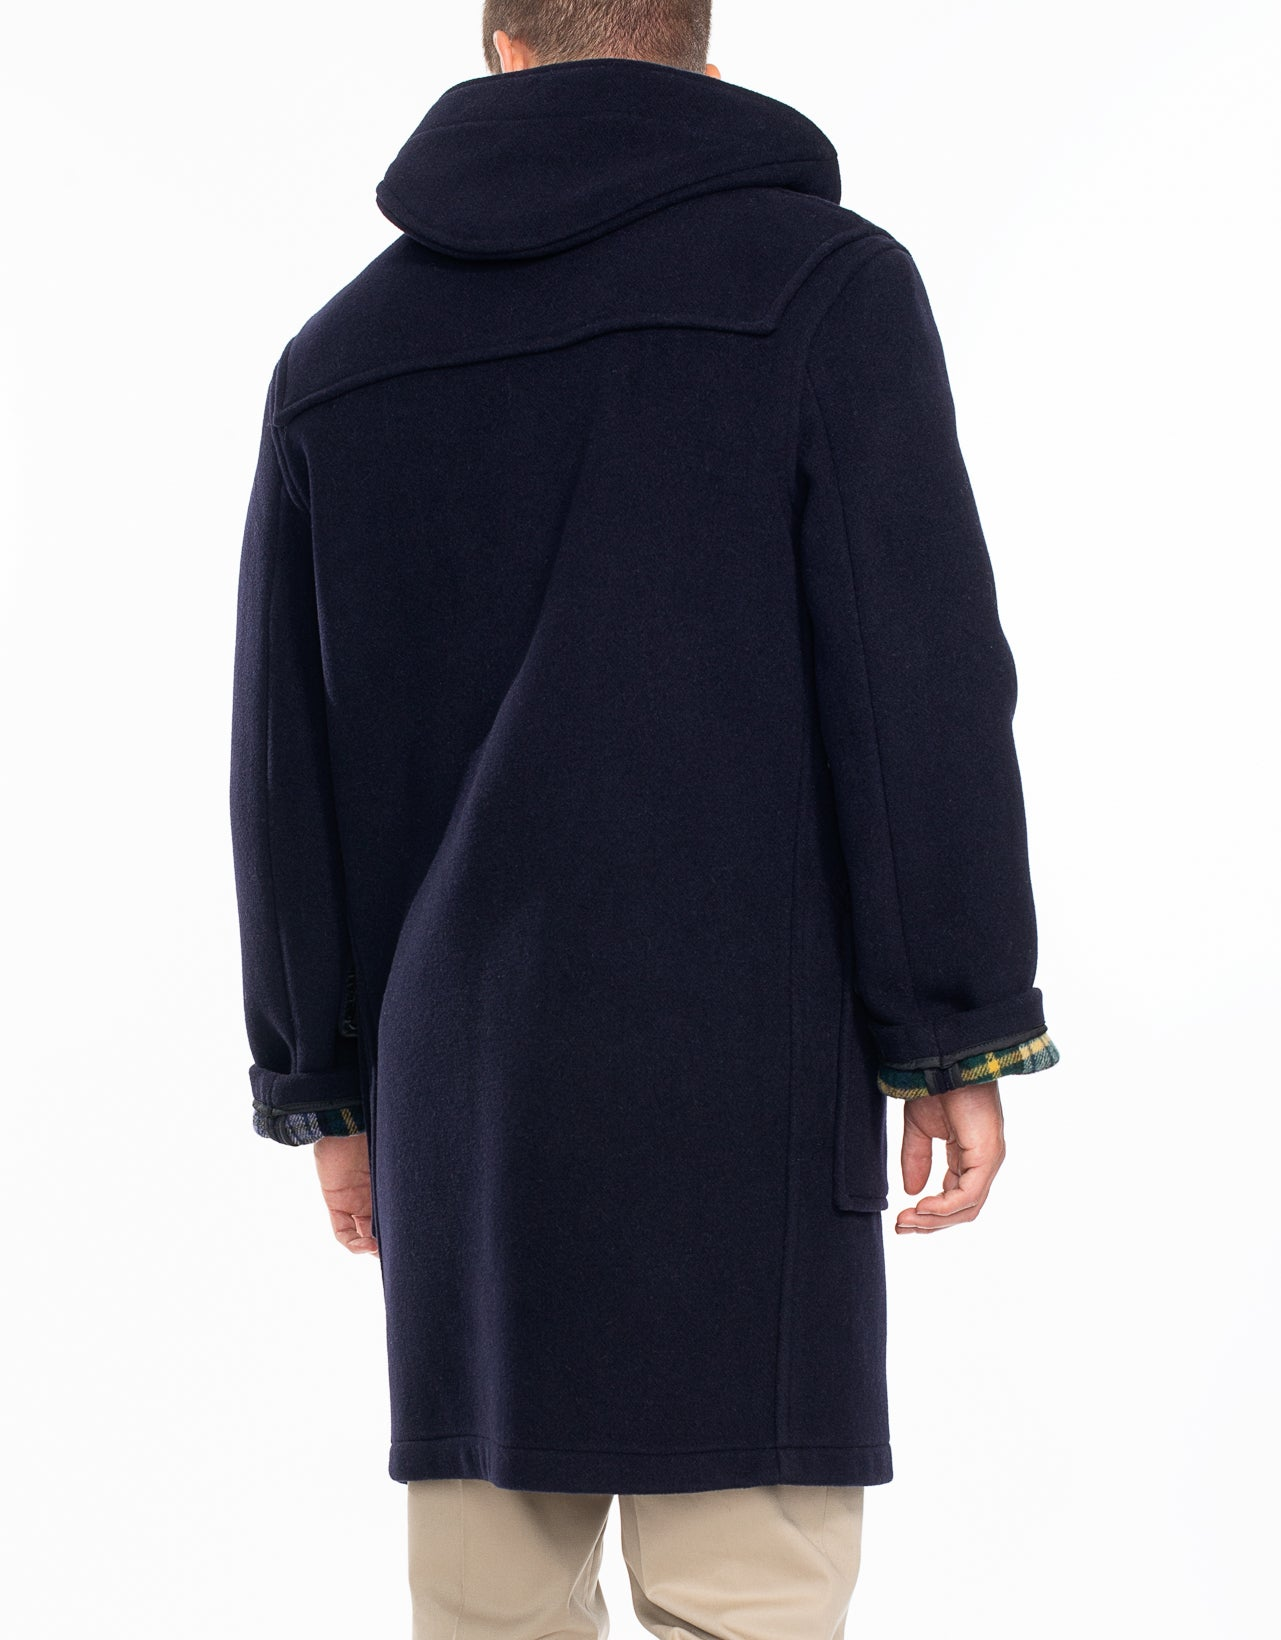 DUFFLE COAT - NAVY